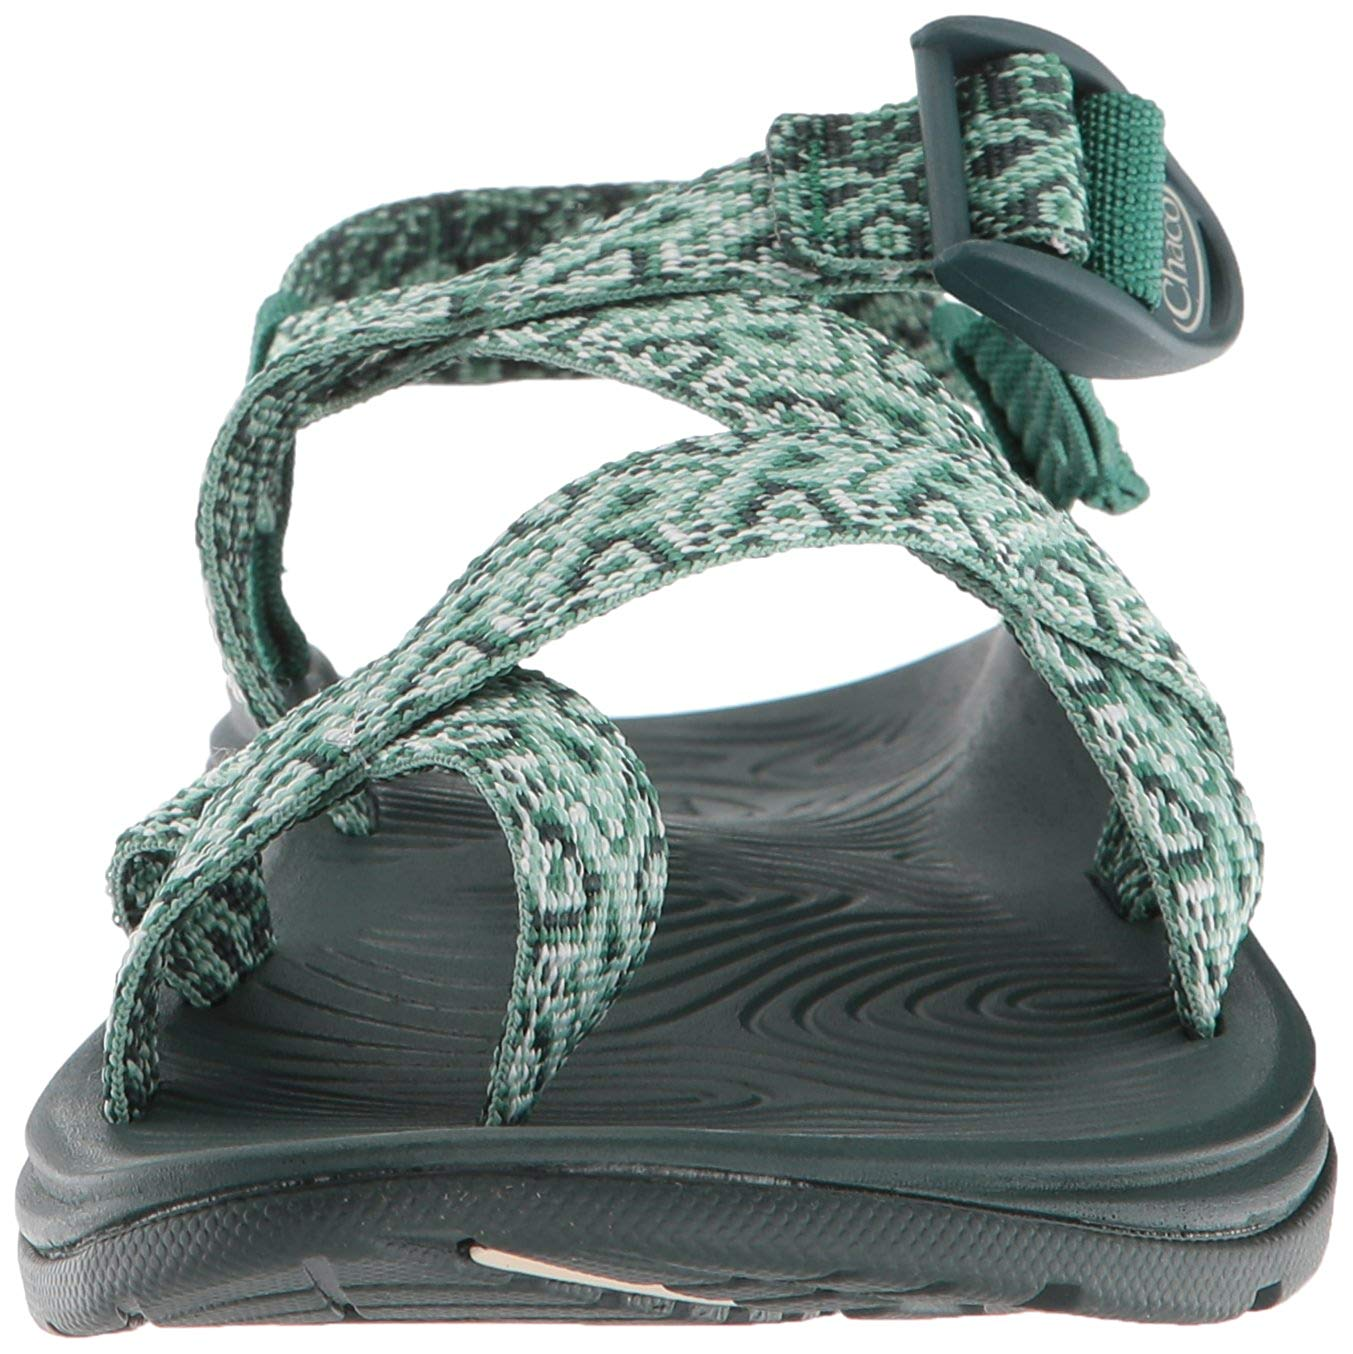 a1391536004c Chaco Women s Zvolv 2 Athletic Sandal